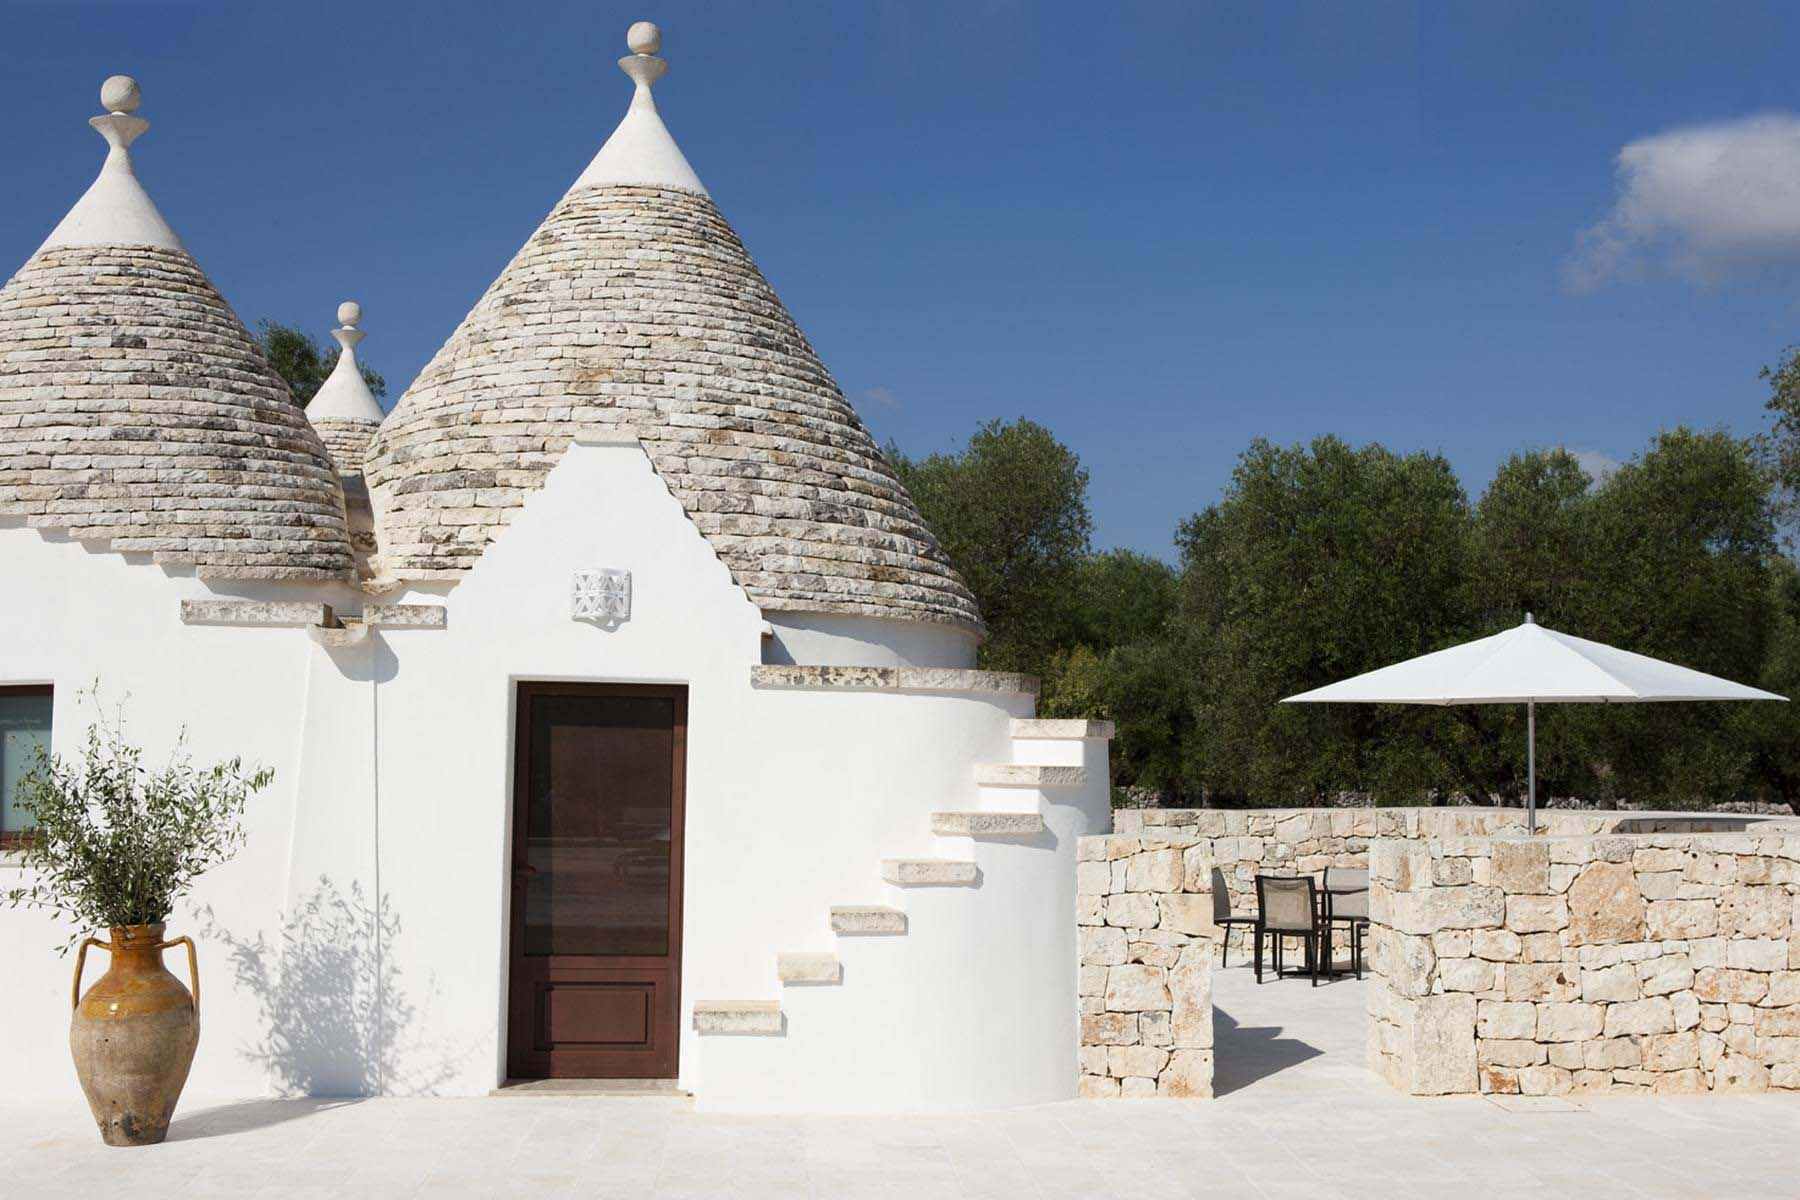 Luxus Trulli Apulien Immobilien haus kaufen | Sotheby's Realty - sothebys.photo 1